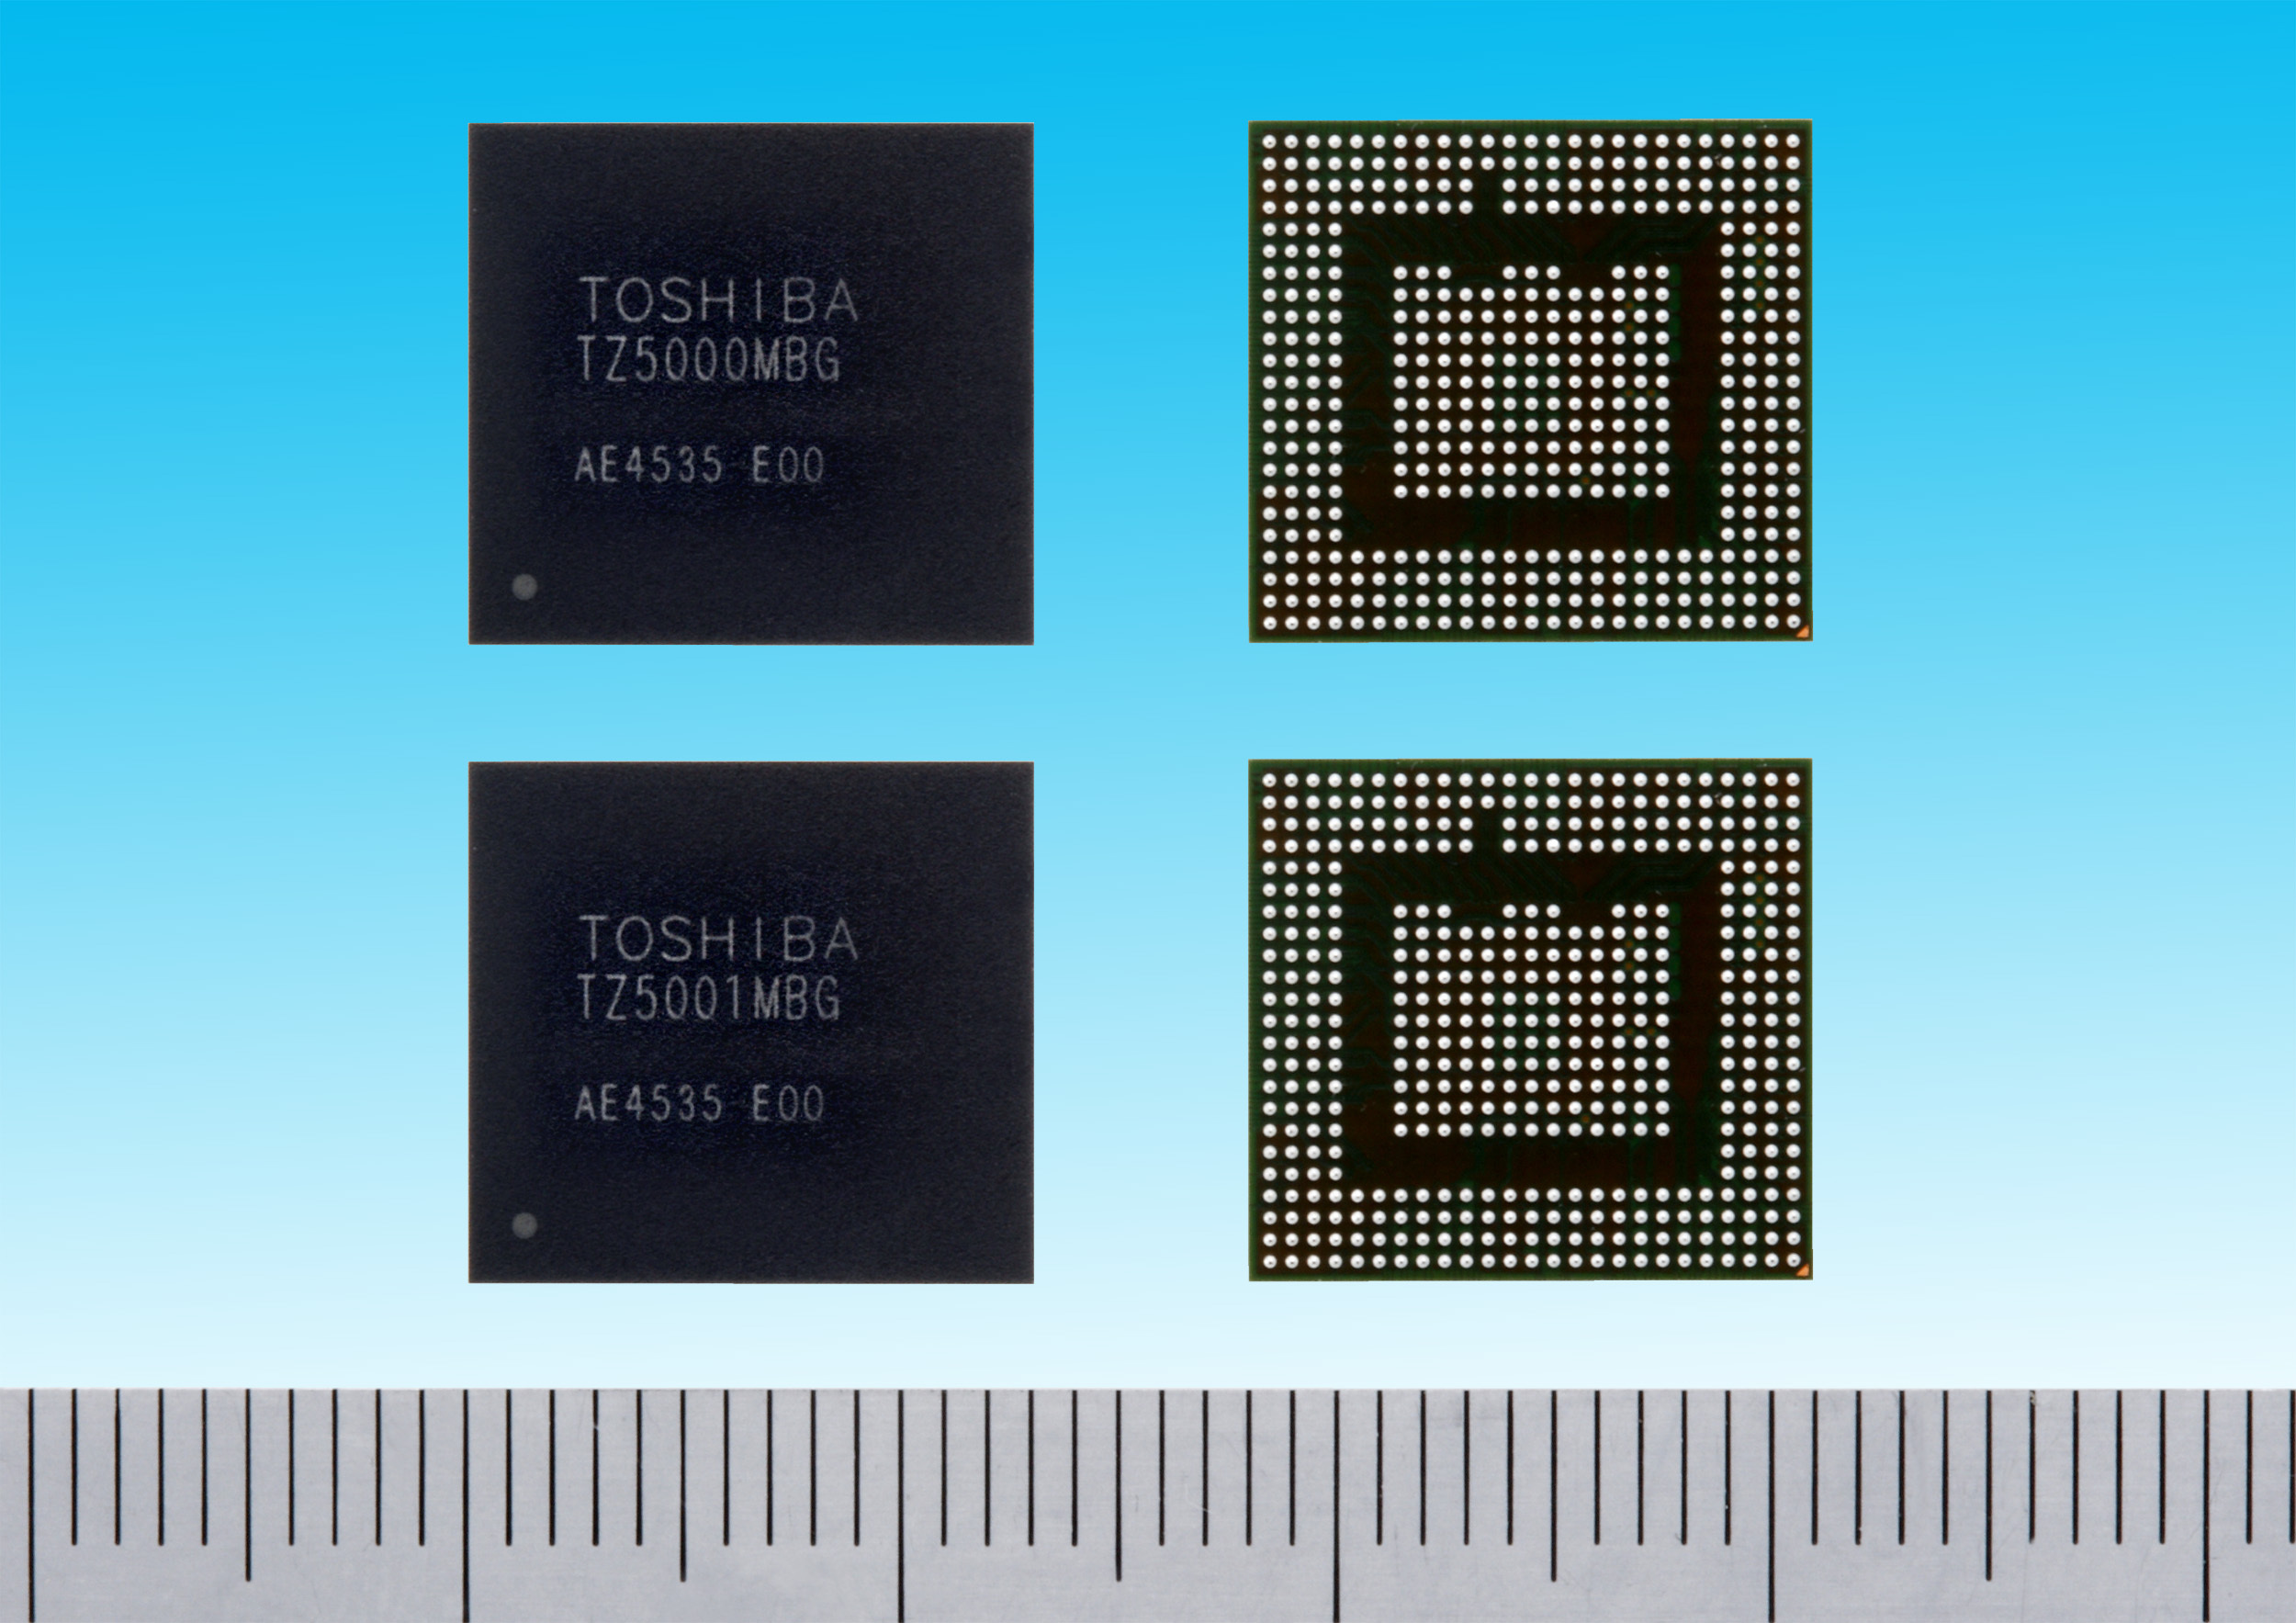 """Toshiba: """"TZ5000 series"""" of ApP Lite(TM) processors supporting wireless communication of high quality video (Photo: Business Wire)"""